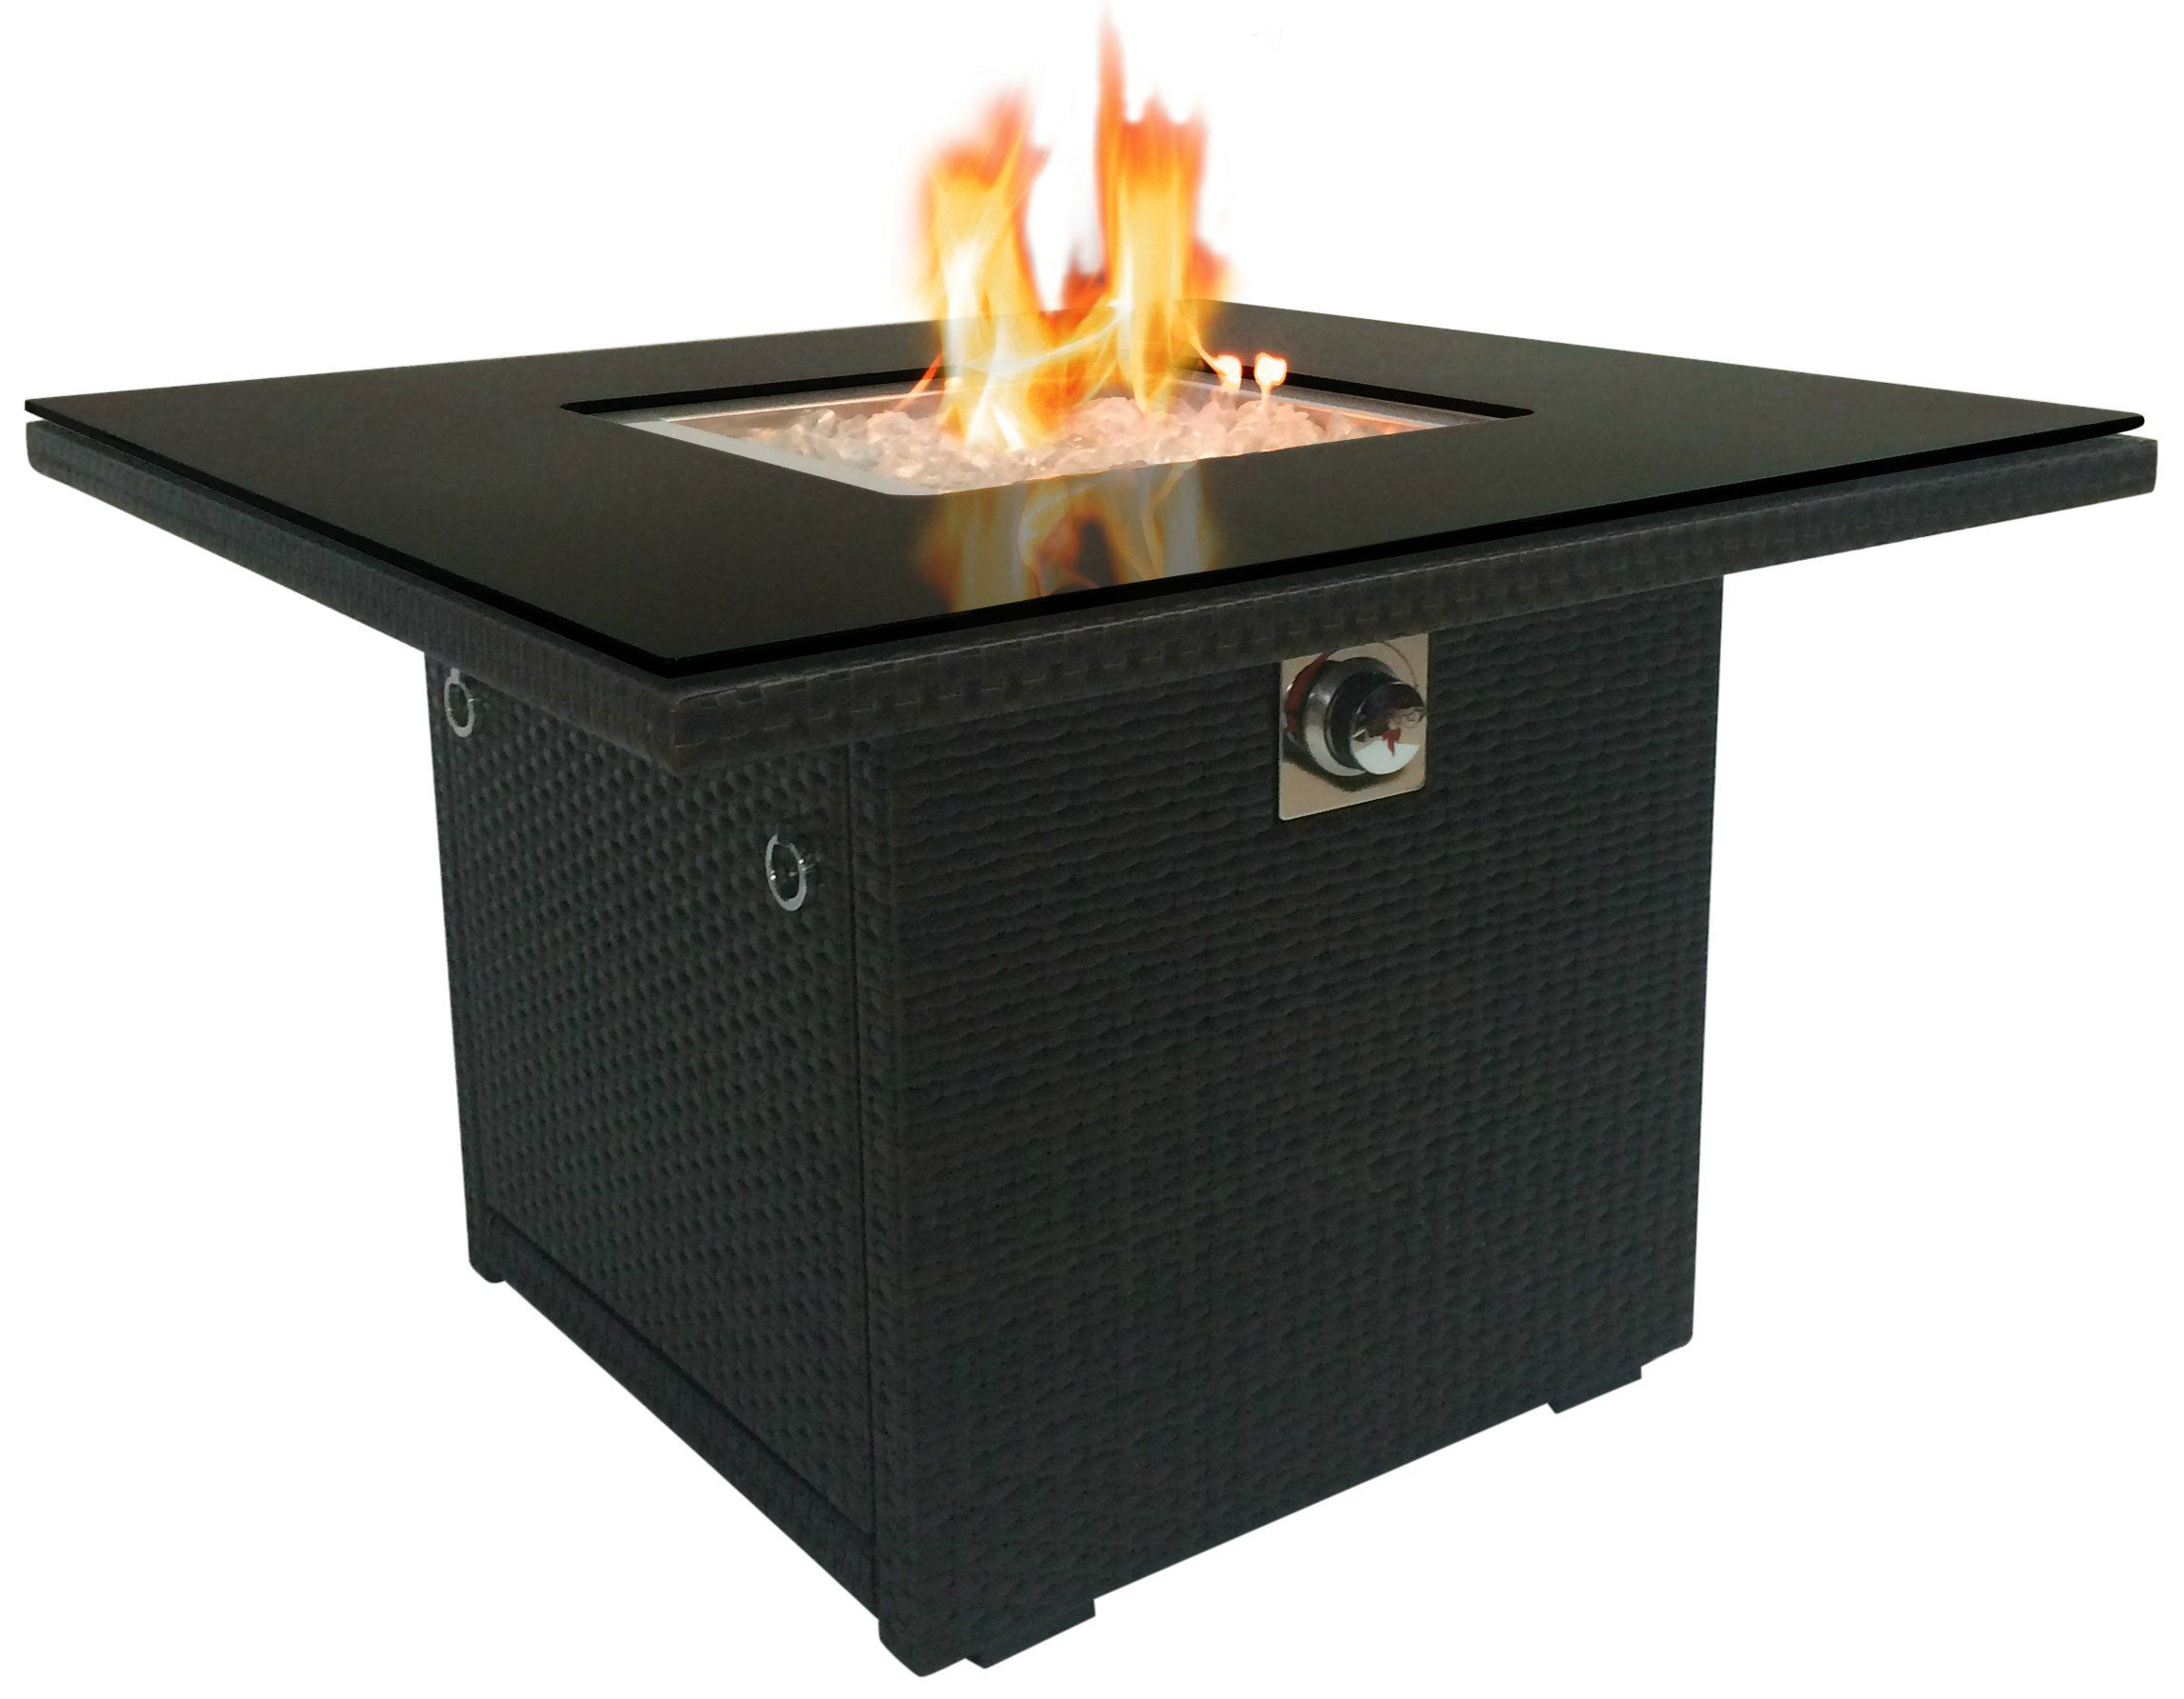 outland fire table 36inch square aluminum frame propane fire pit